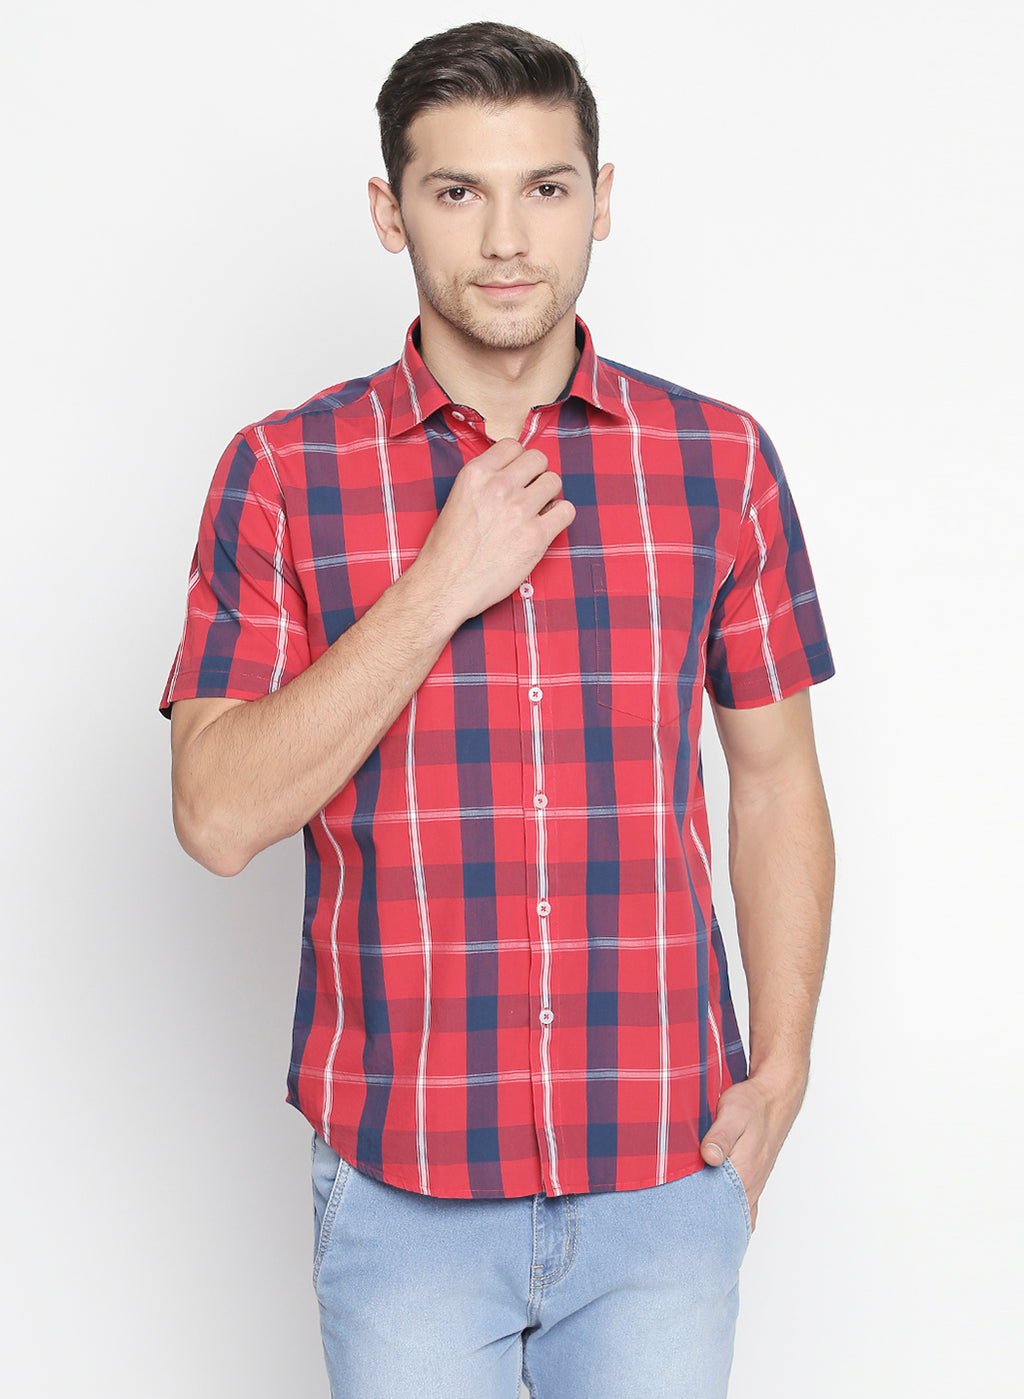 ZIDO Slim fit COTTON Checkered Shirt for Men's BTCH1423